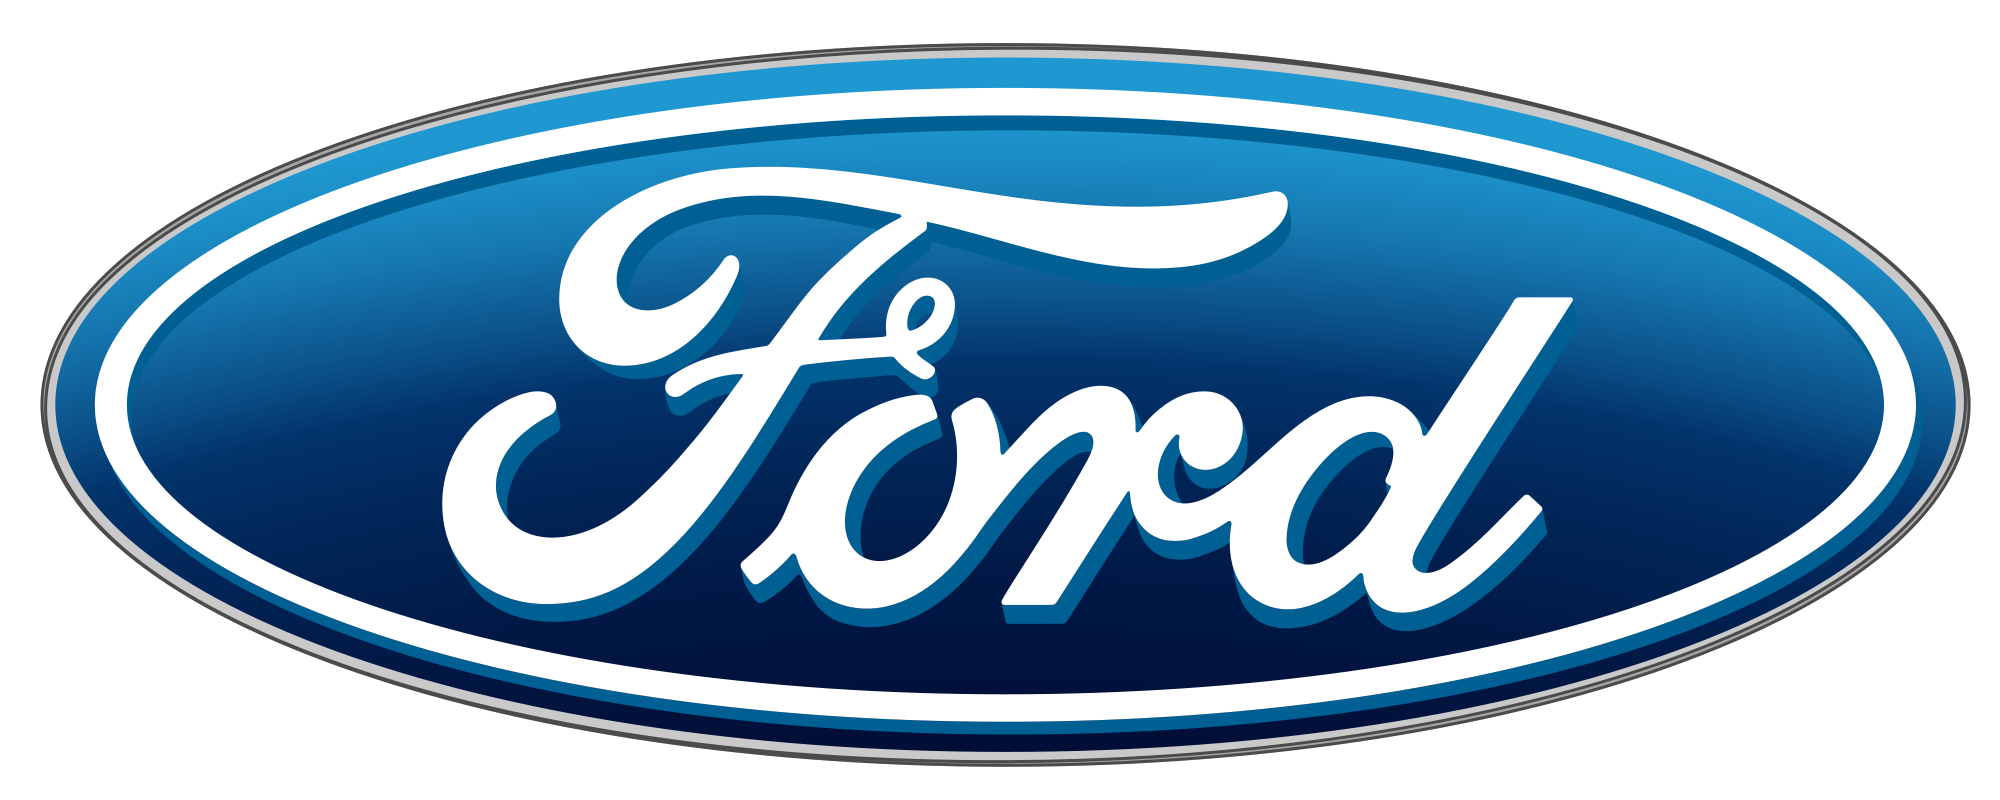 Fountain city ford